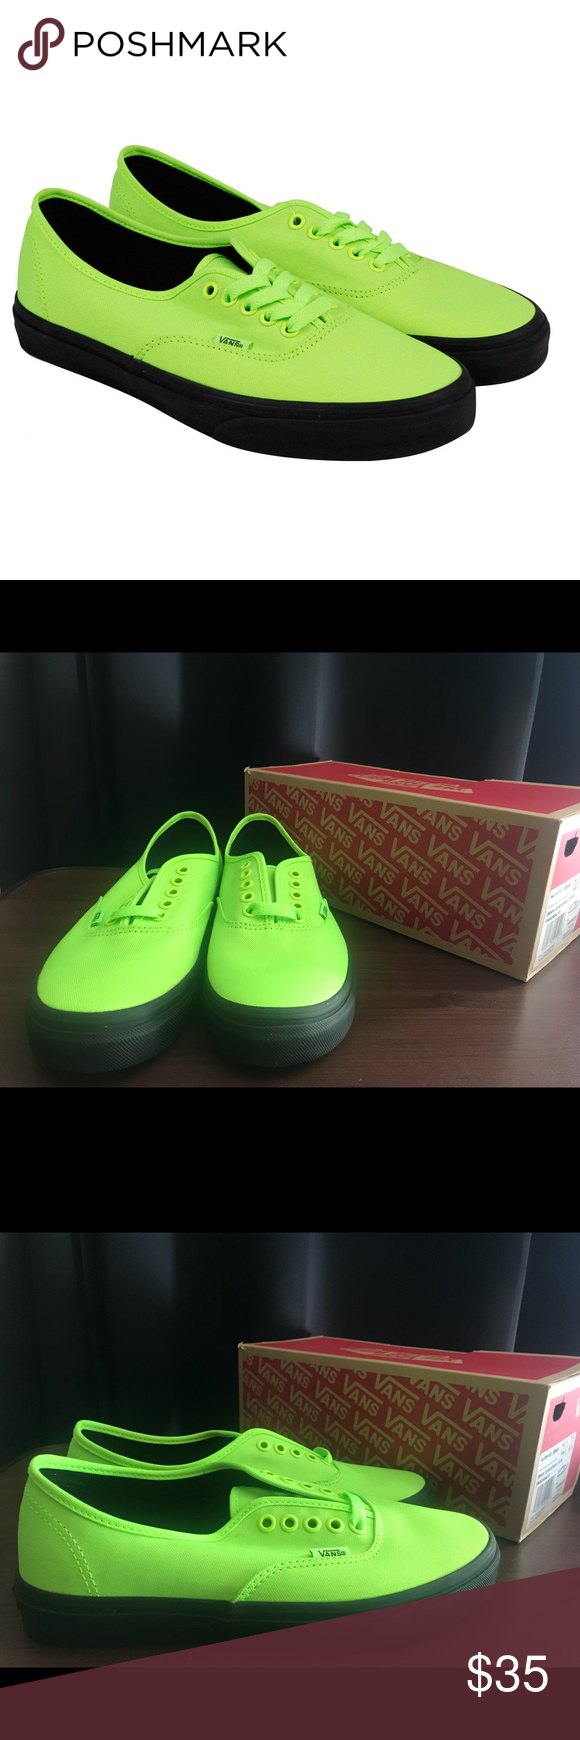 bacfdda11a Vans Authentic Vans Authentic Black Outsole Neon Green Black Women Sz 9.5  Men Sz 7.5 Vans Shoes